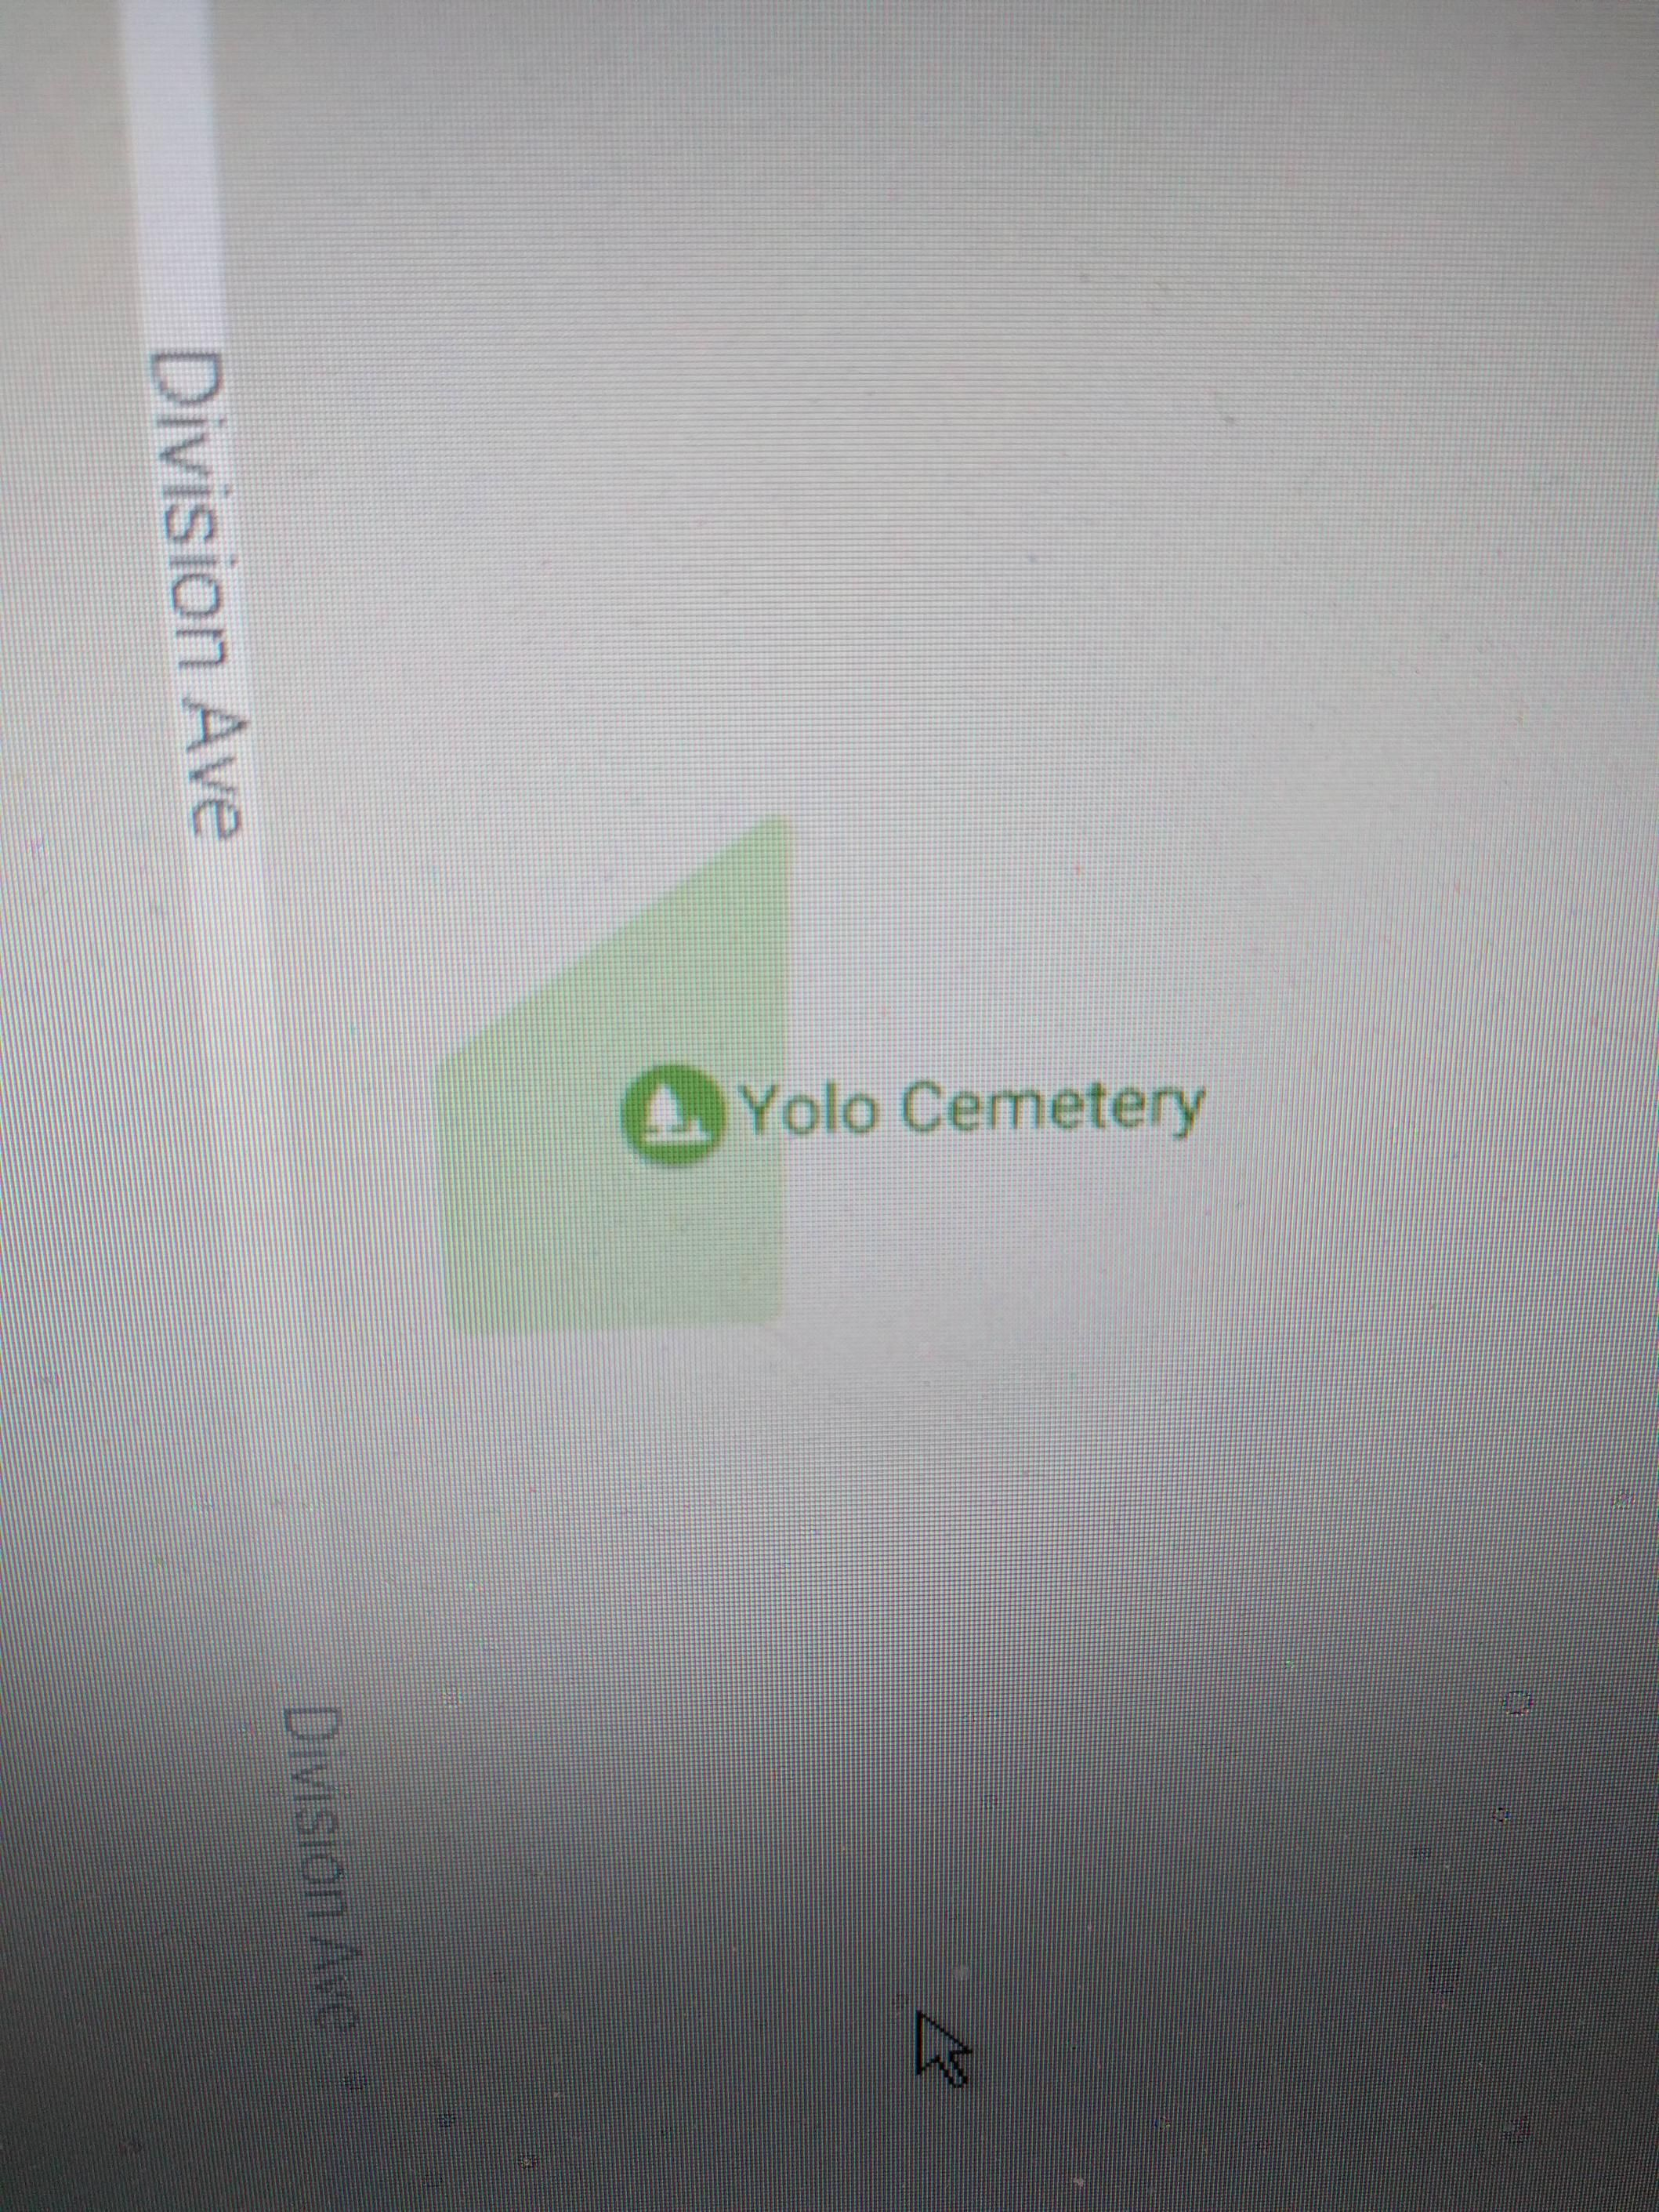 4 - The YOLO Cemetery as seen on a map.